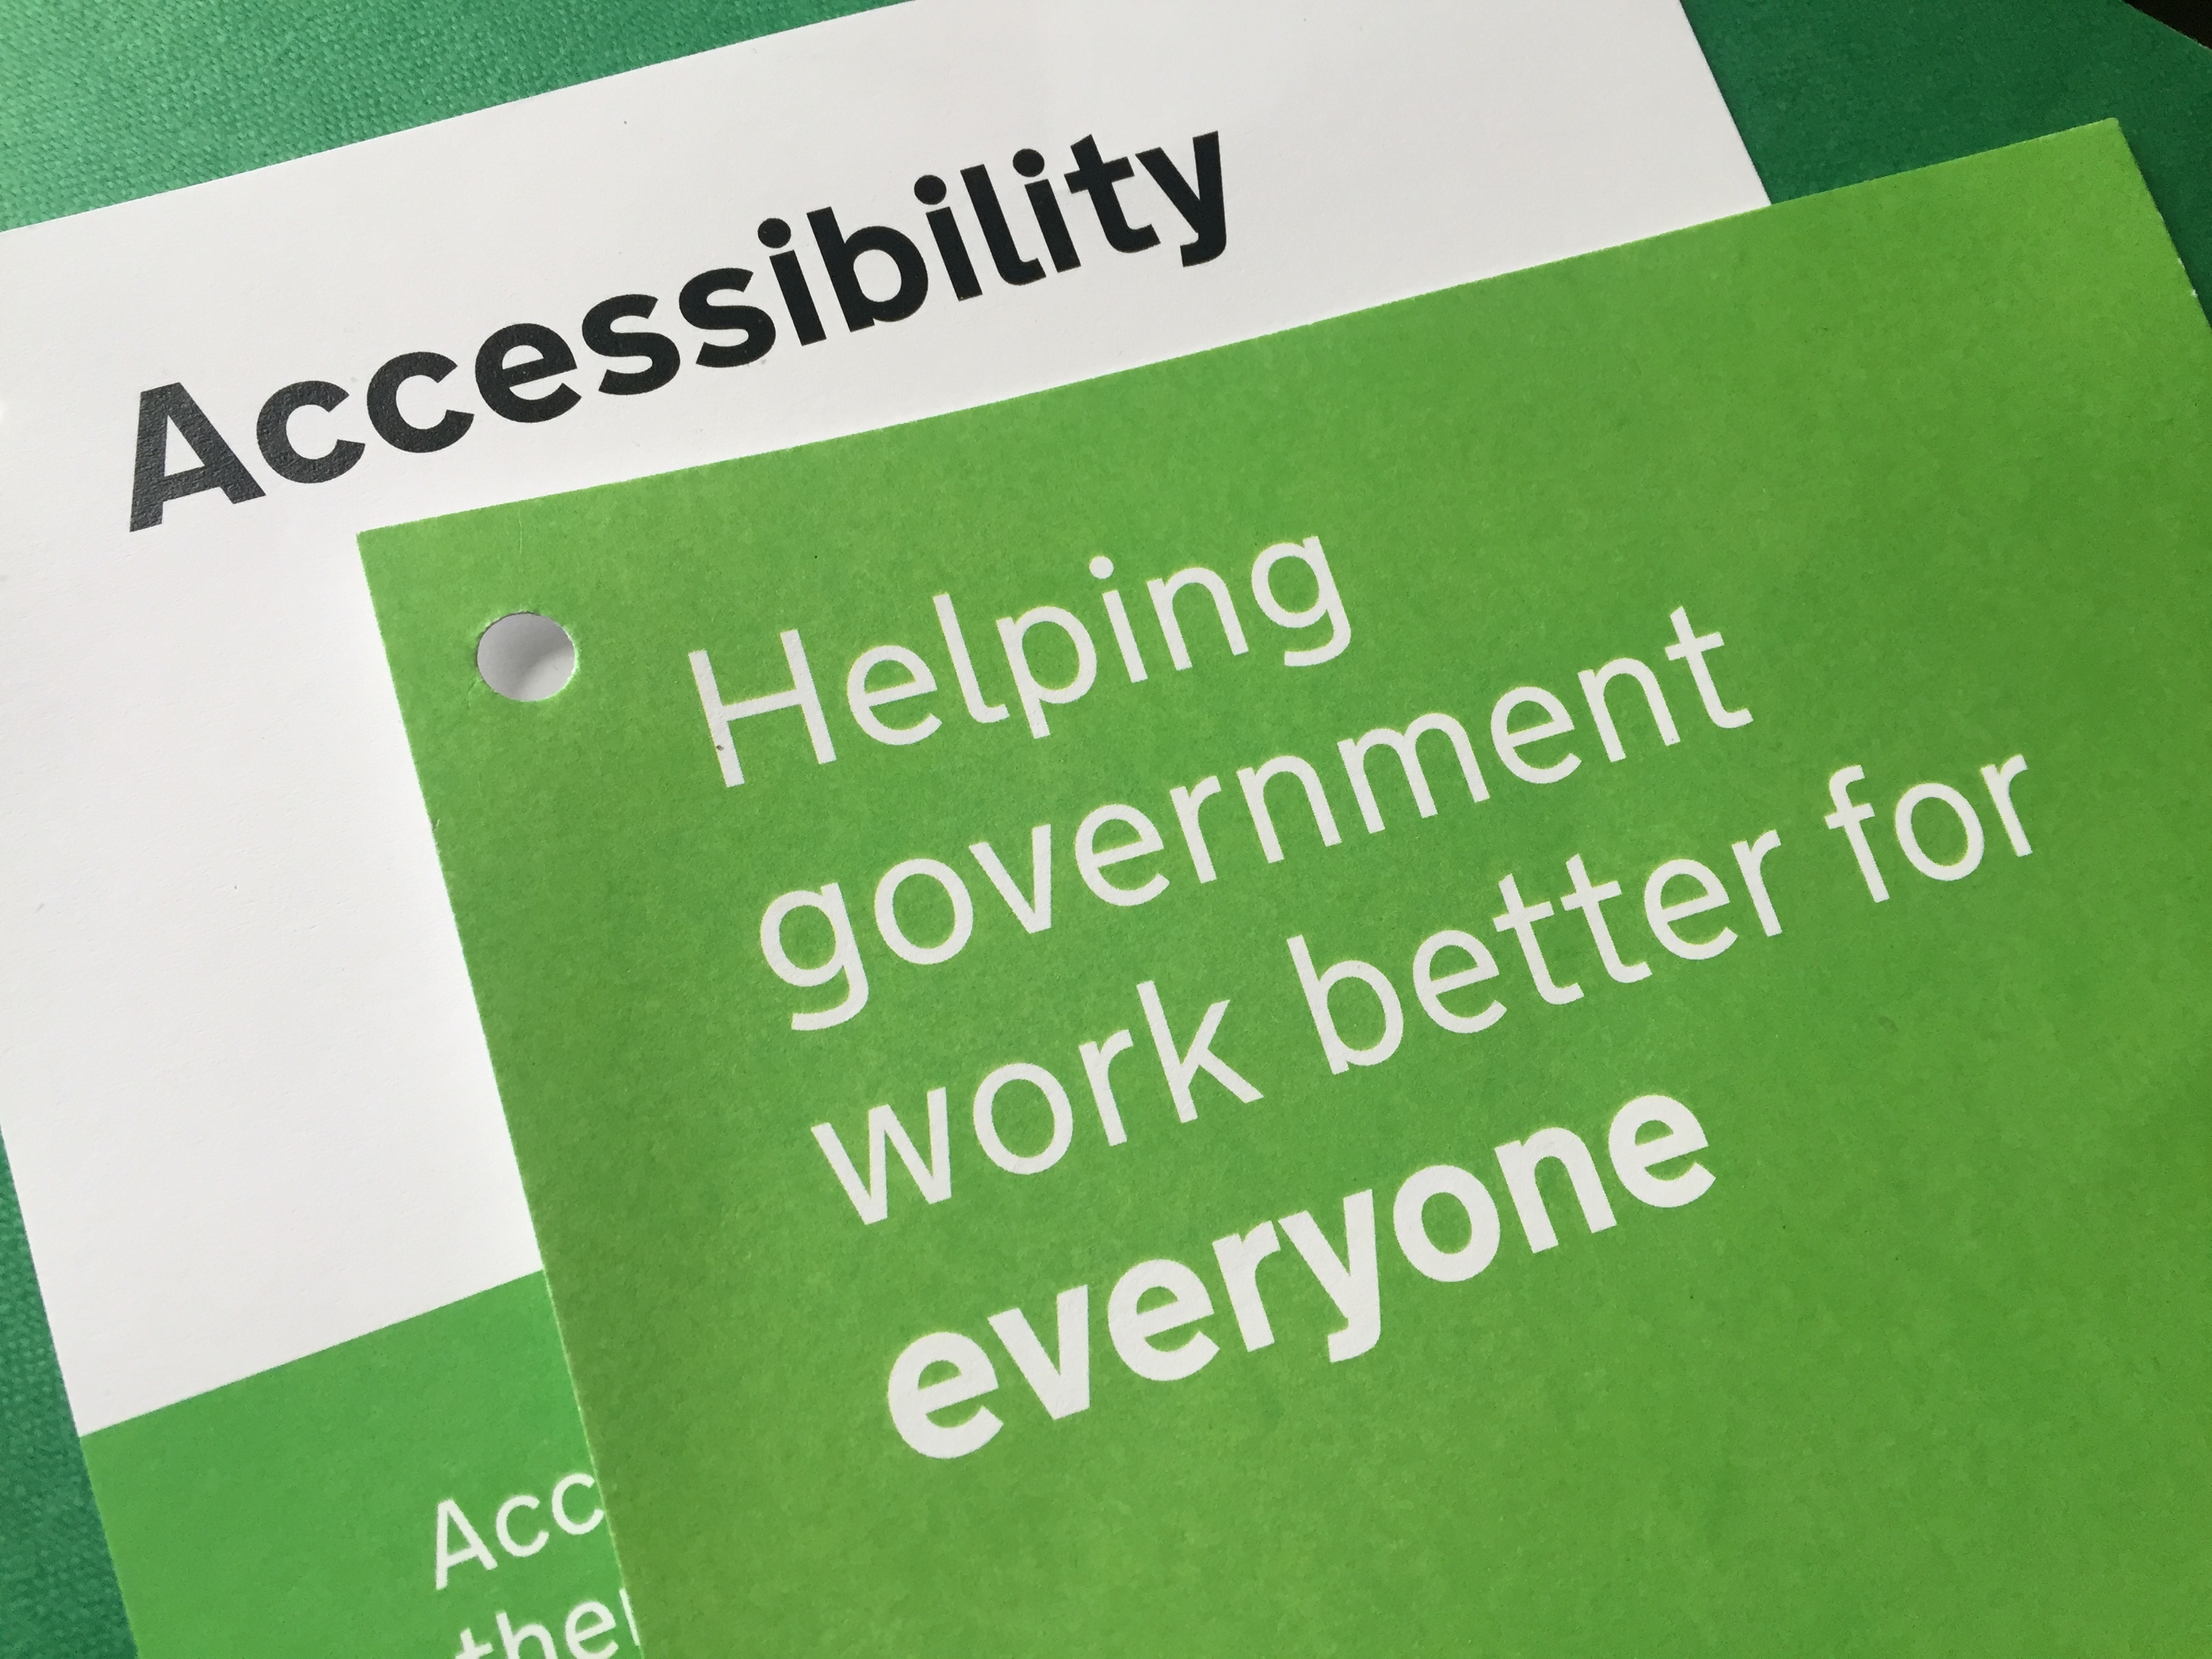 Pages of the delegate pack stating 'accessibility' and 'helping government work better for everyone'